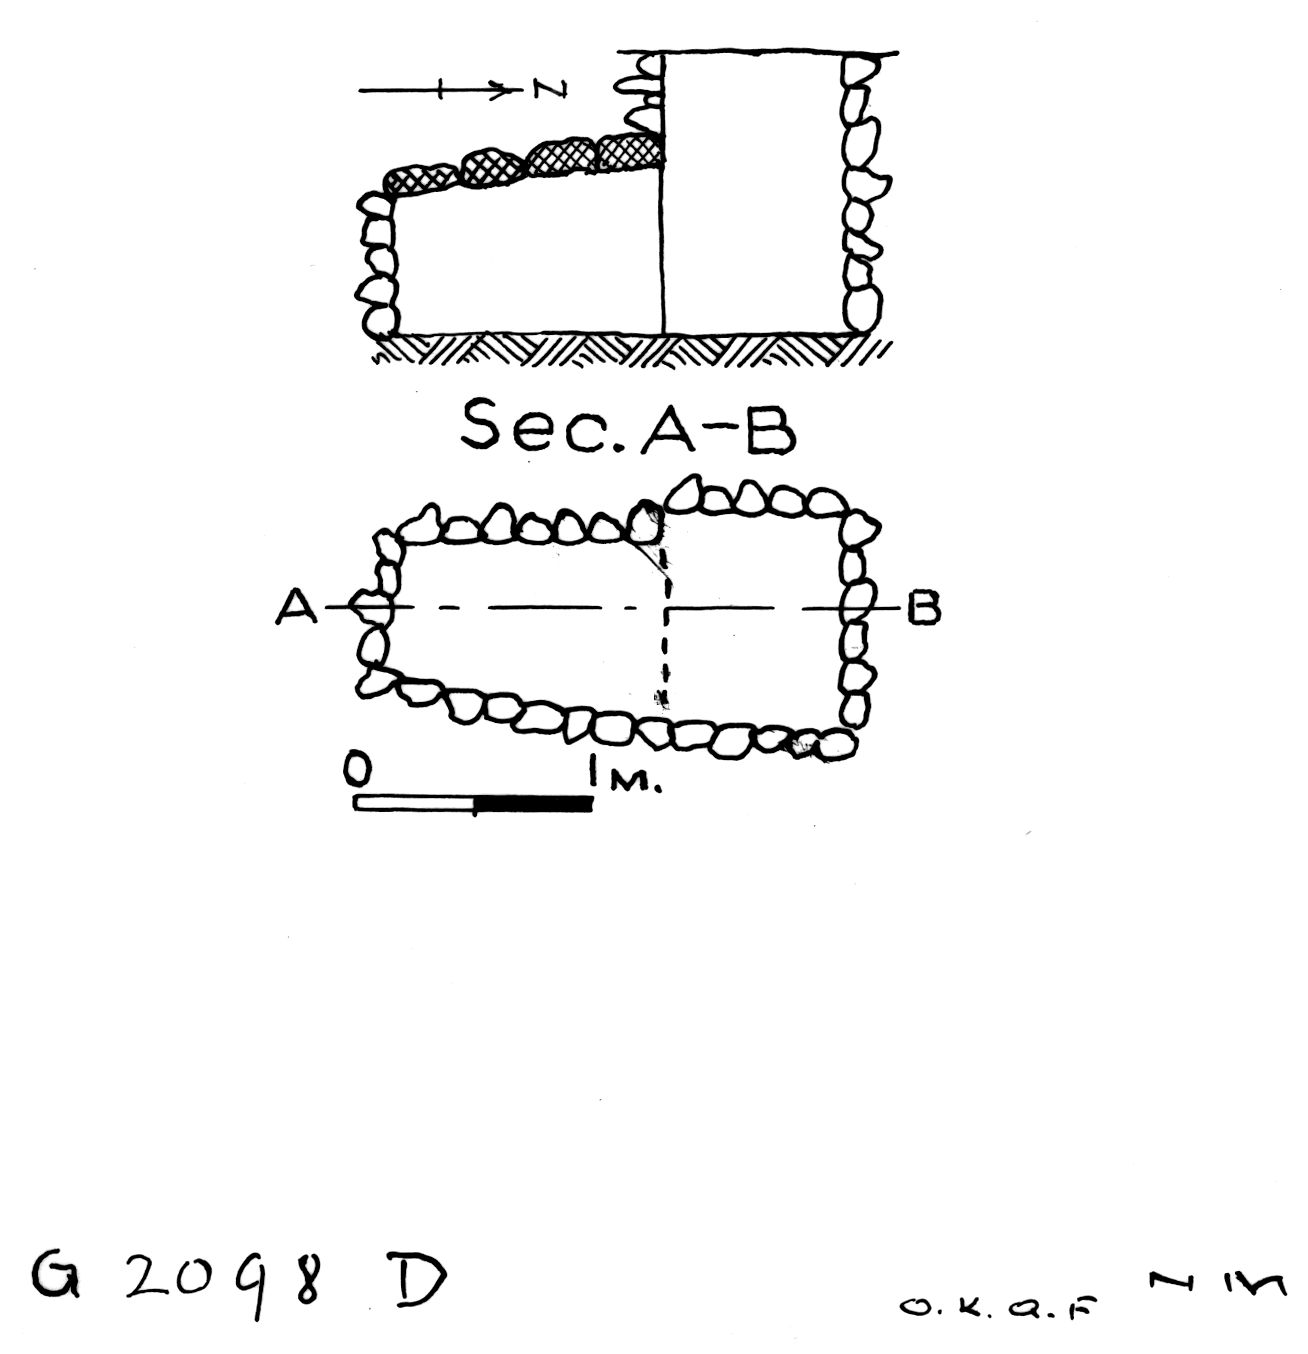 Maps and plans: G 2098, Shaft D